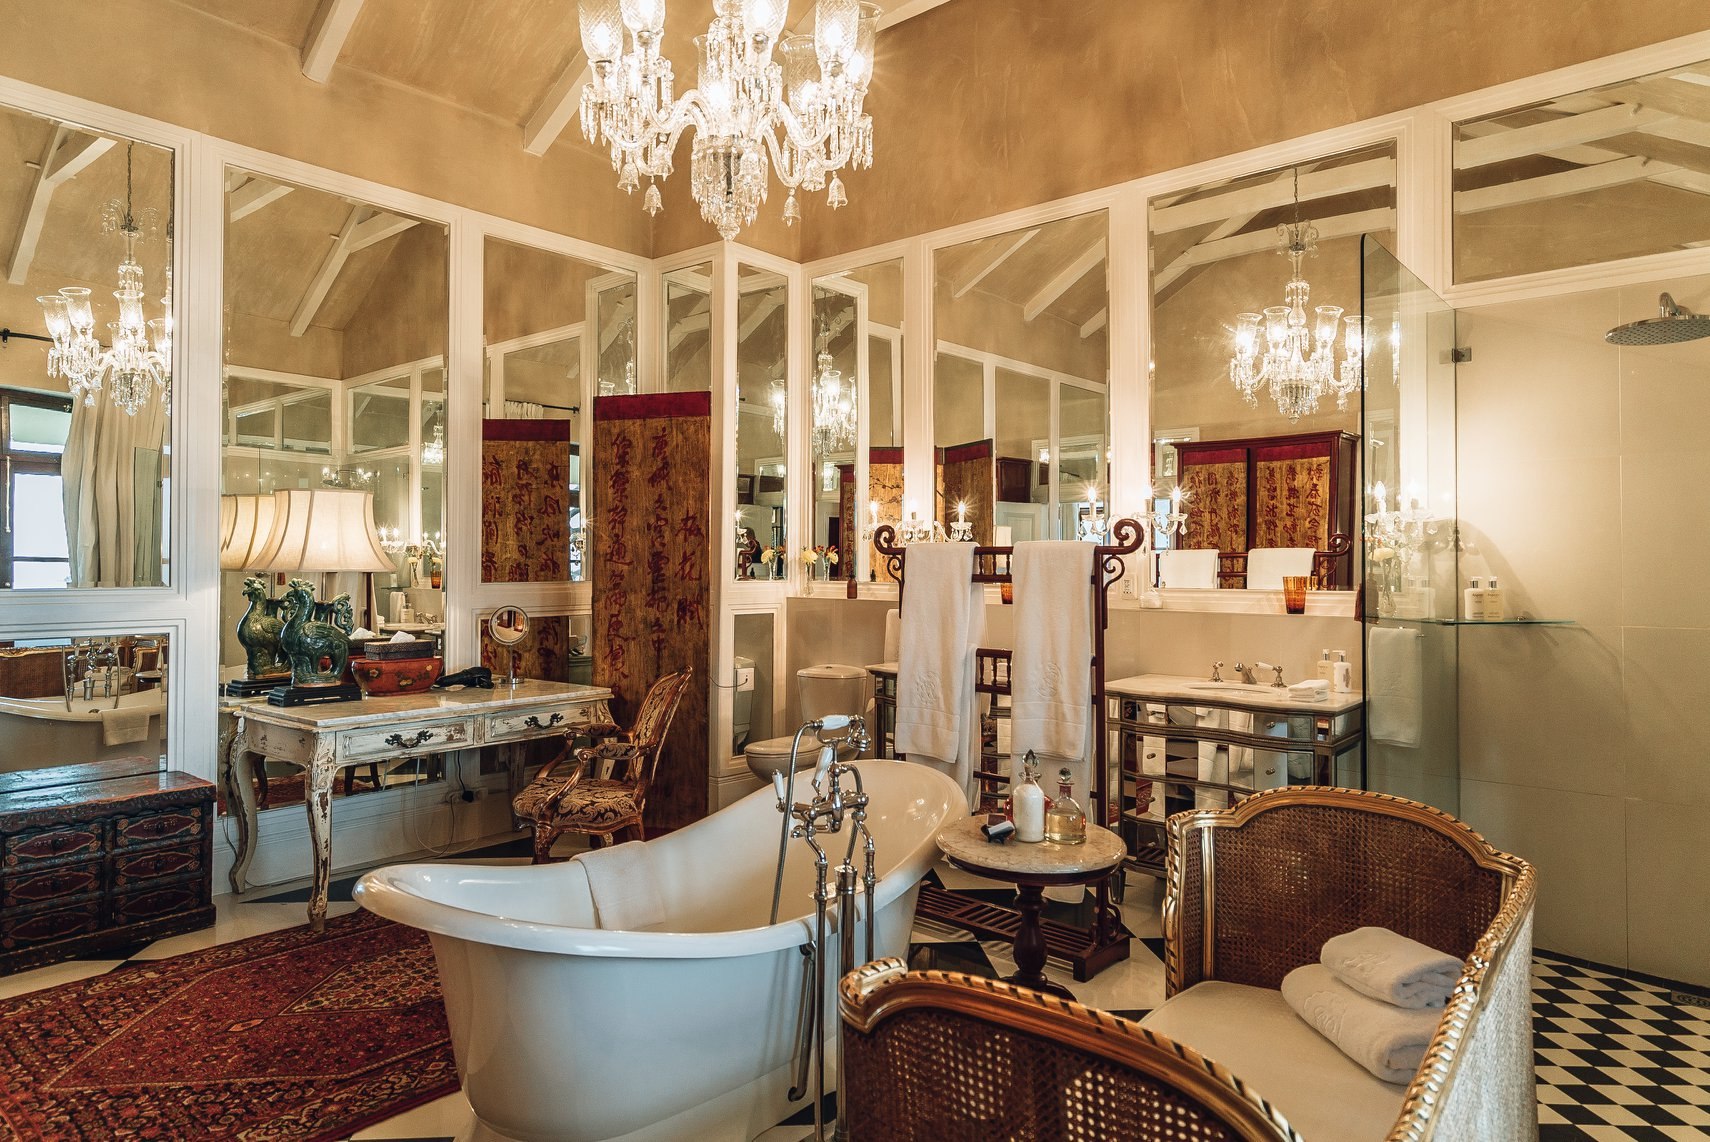 Maushami Chetty On Inspiration Adventure: Two South African Hotels Make World's Top 100